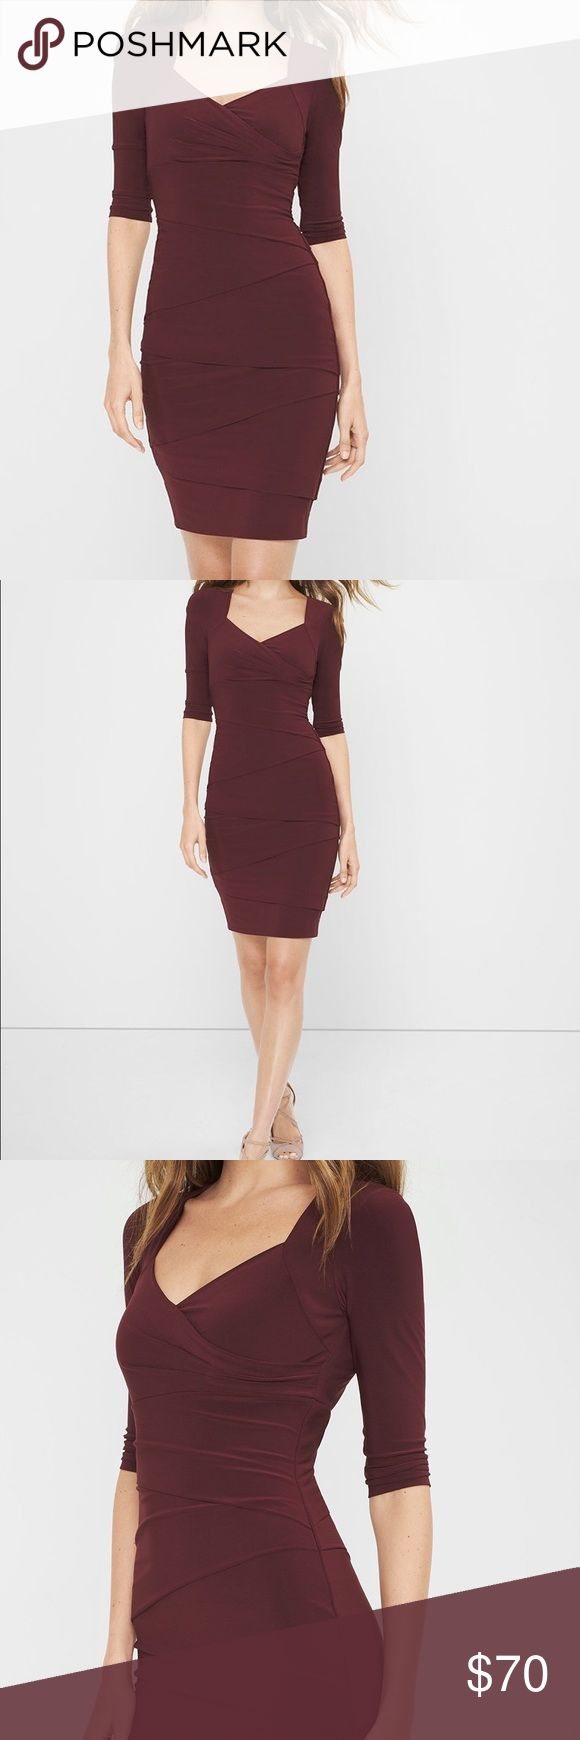 """NEW 3/4 SLEEVE INSTANTLY SLIMMING DRESS Three quarter-sleeve instantly slimming dress. Built-in shapewear smoothes from the lining creating a sleek foundation. Lined. Color: Burgundy. Polyester/spandex. Machine wash. Approx. 37.5"""" from shoulder.                                                      Note: Due to high spandex content, may want to go up one size for better fit. White House Black Market Dresses"""